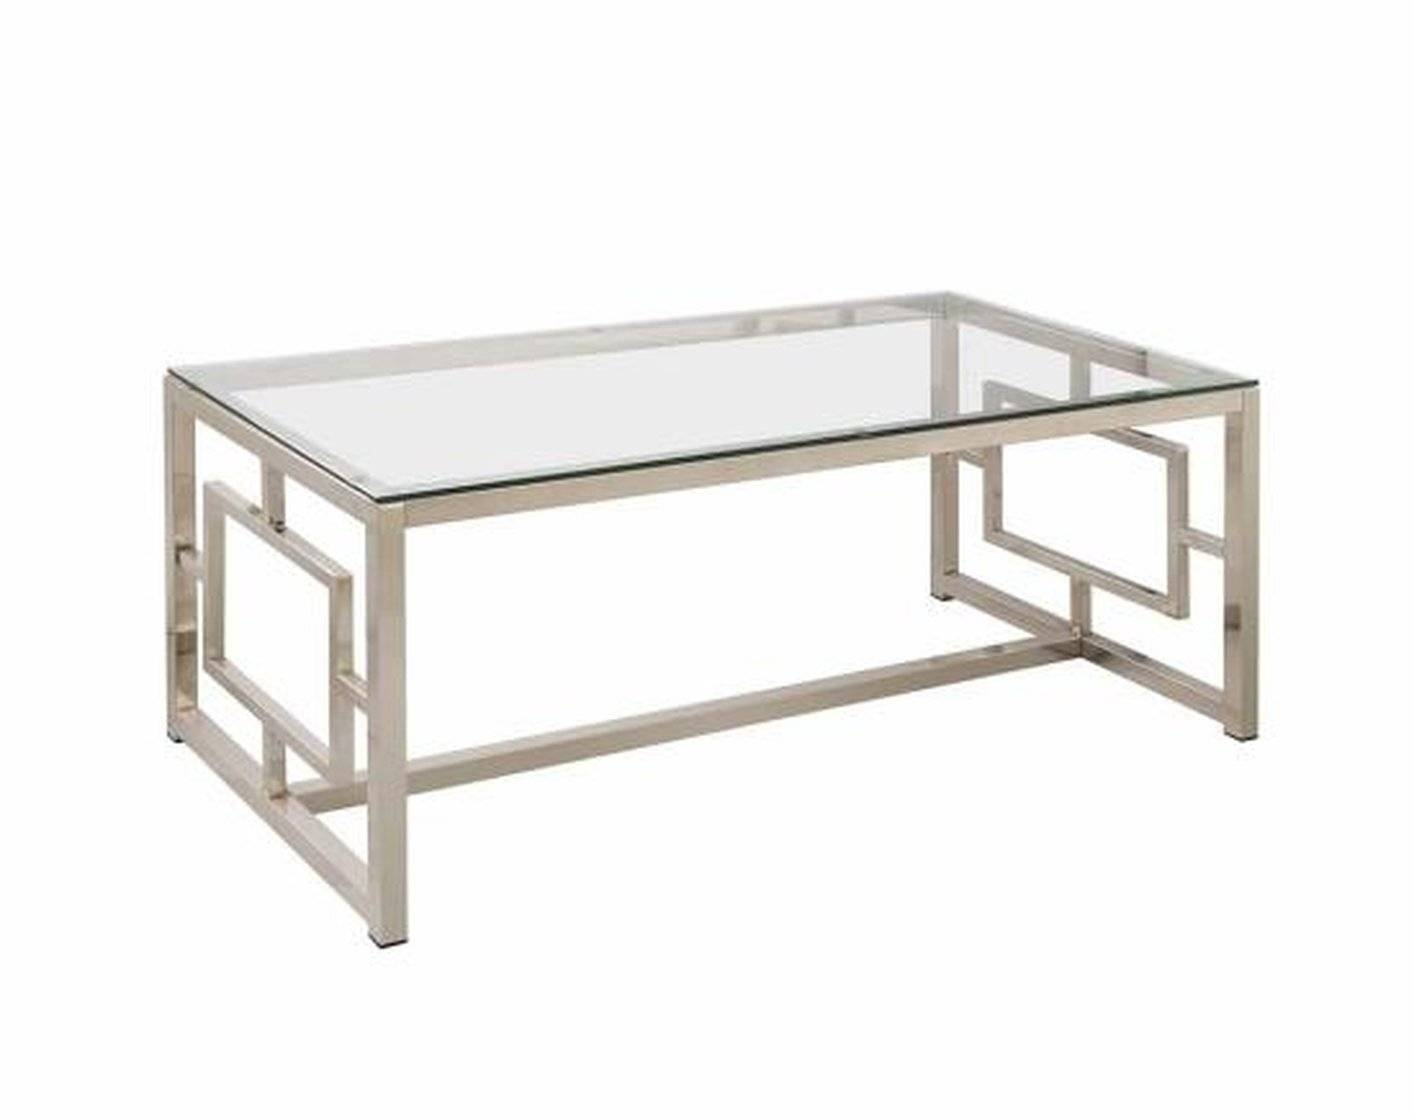 Coffee Table: Astounding Silver And Glass Coffee Table Ideas with regard to Coffee Tables Metal And Glass (Image 8 of 30)